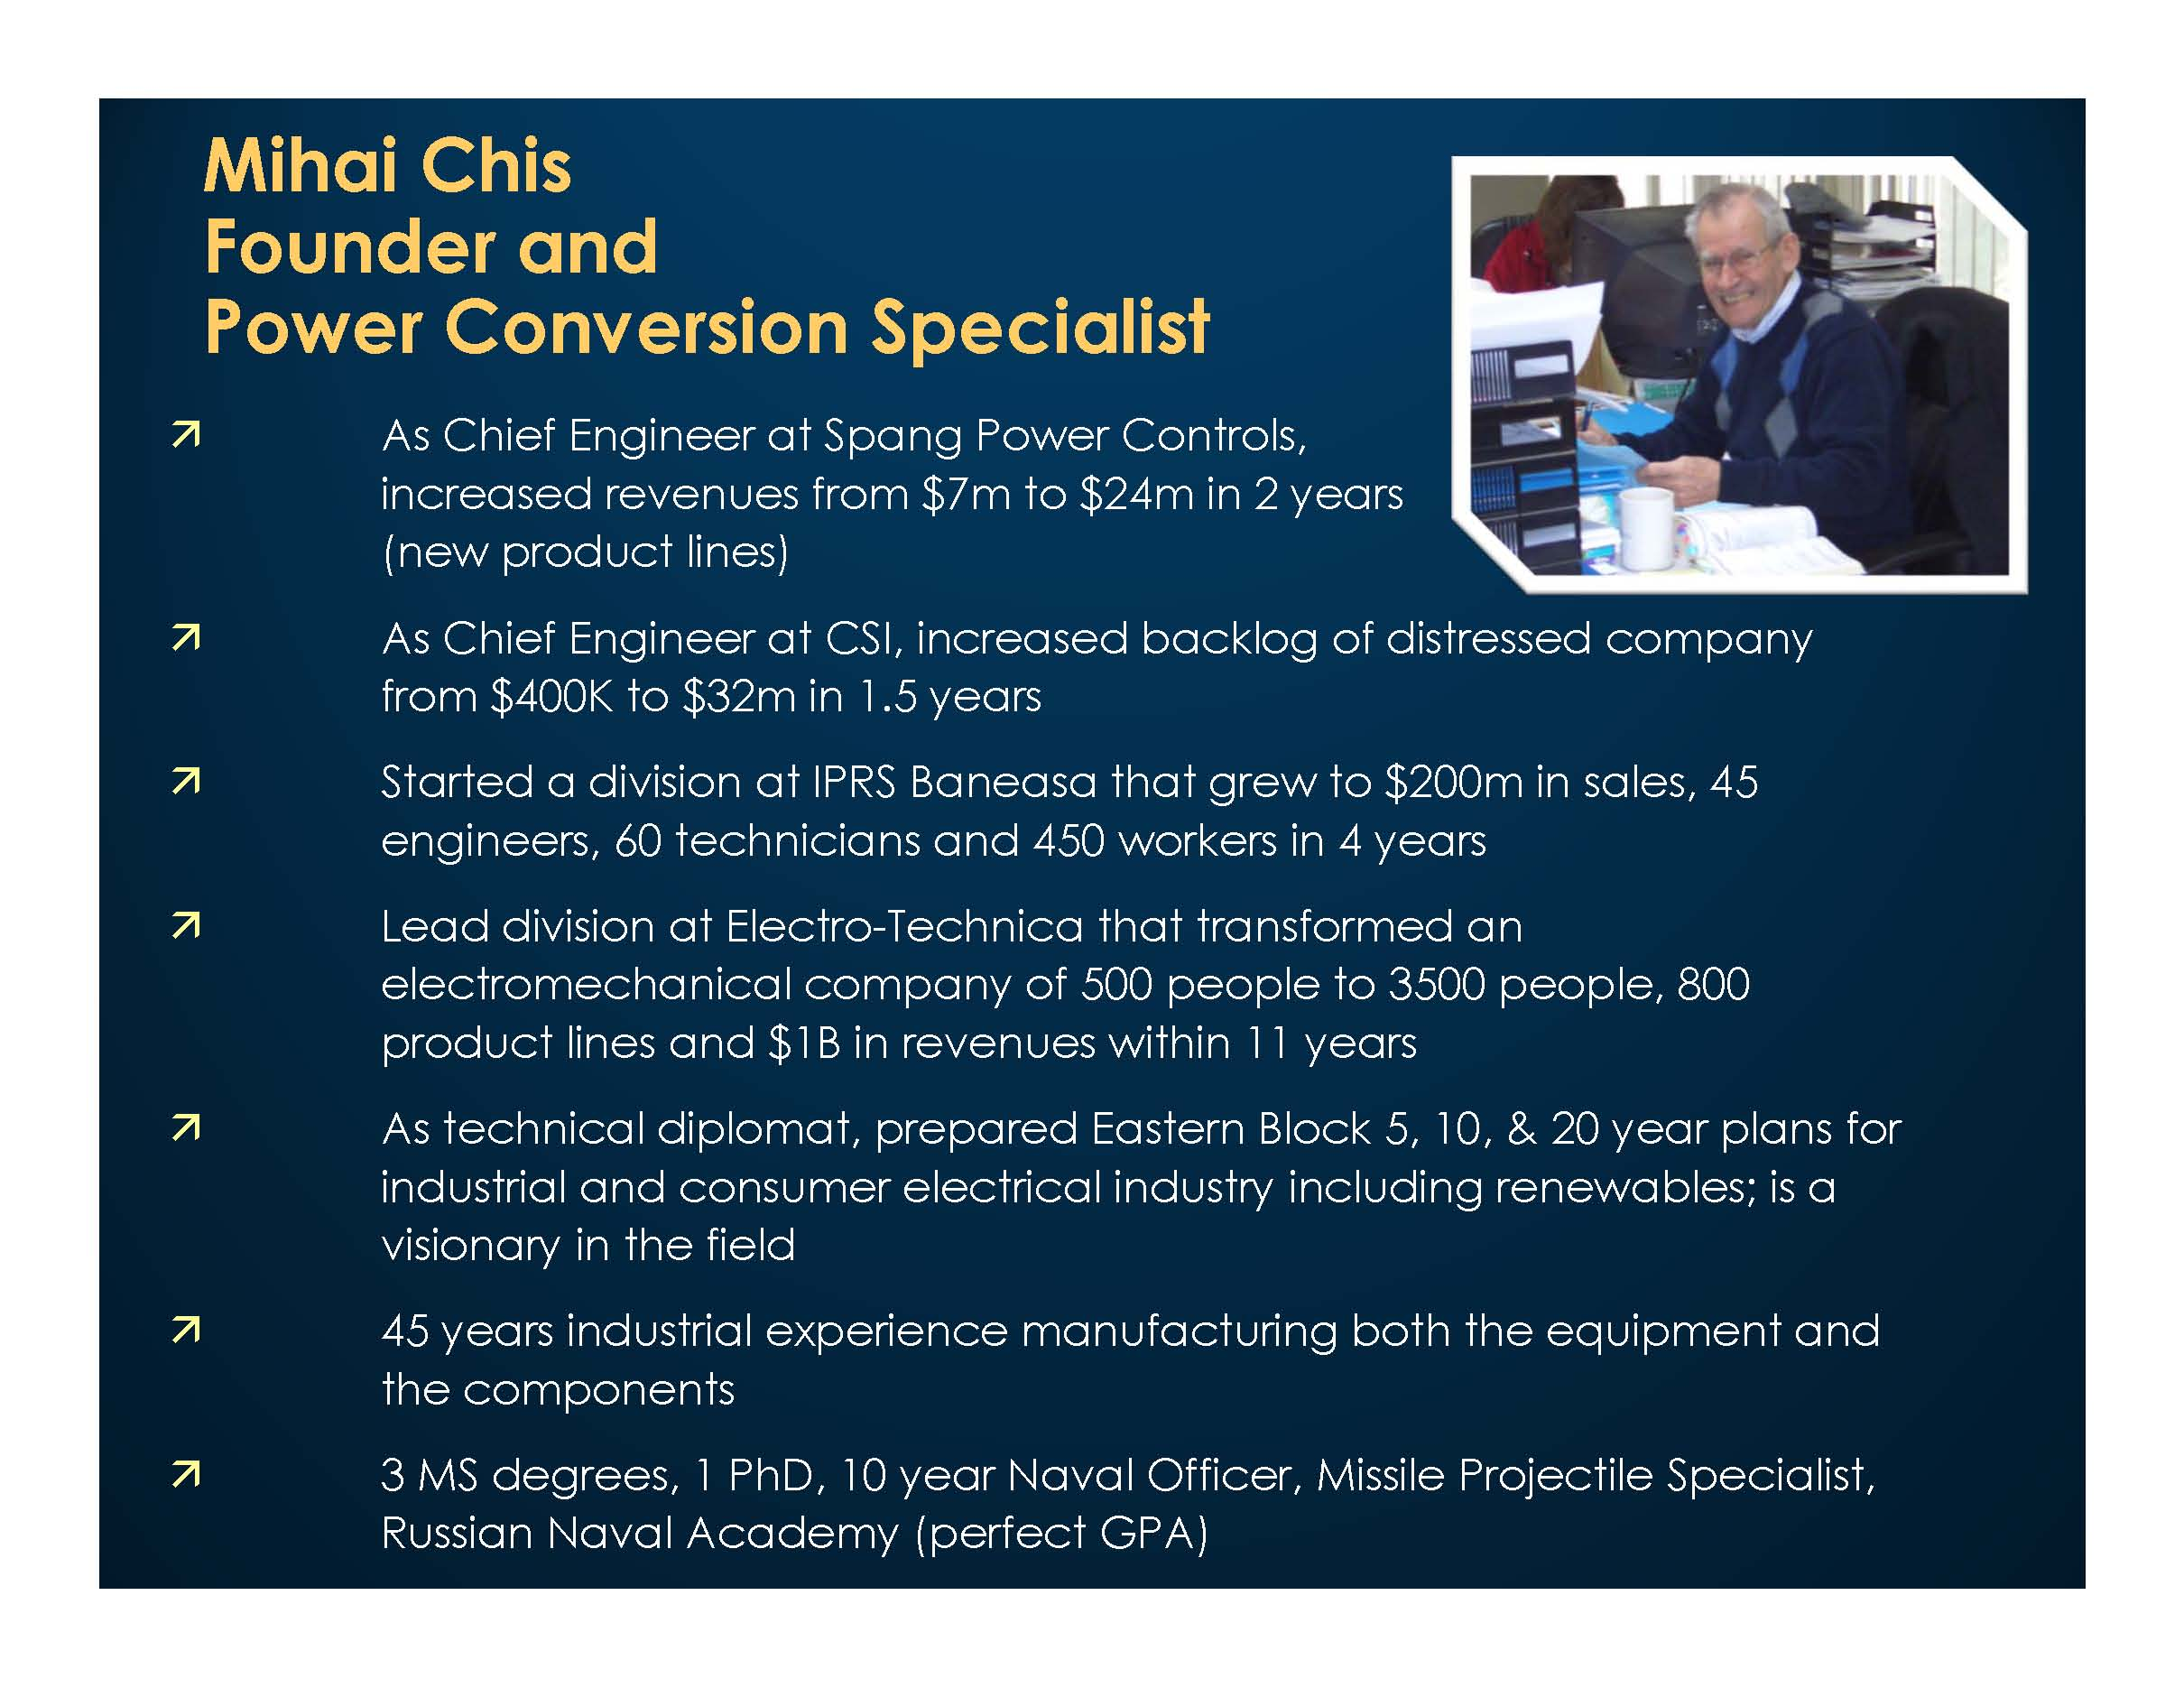 Mihai Chis, Founder and Power Conversion Specialist